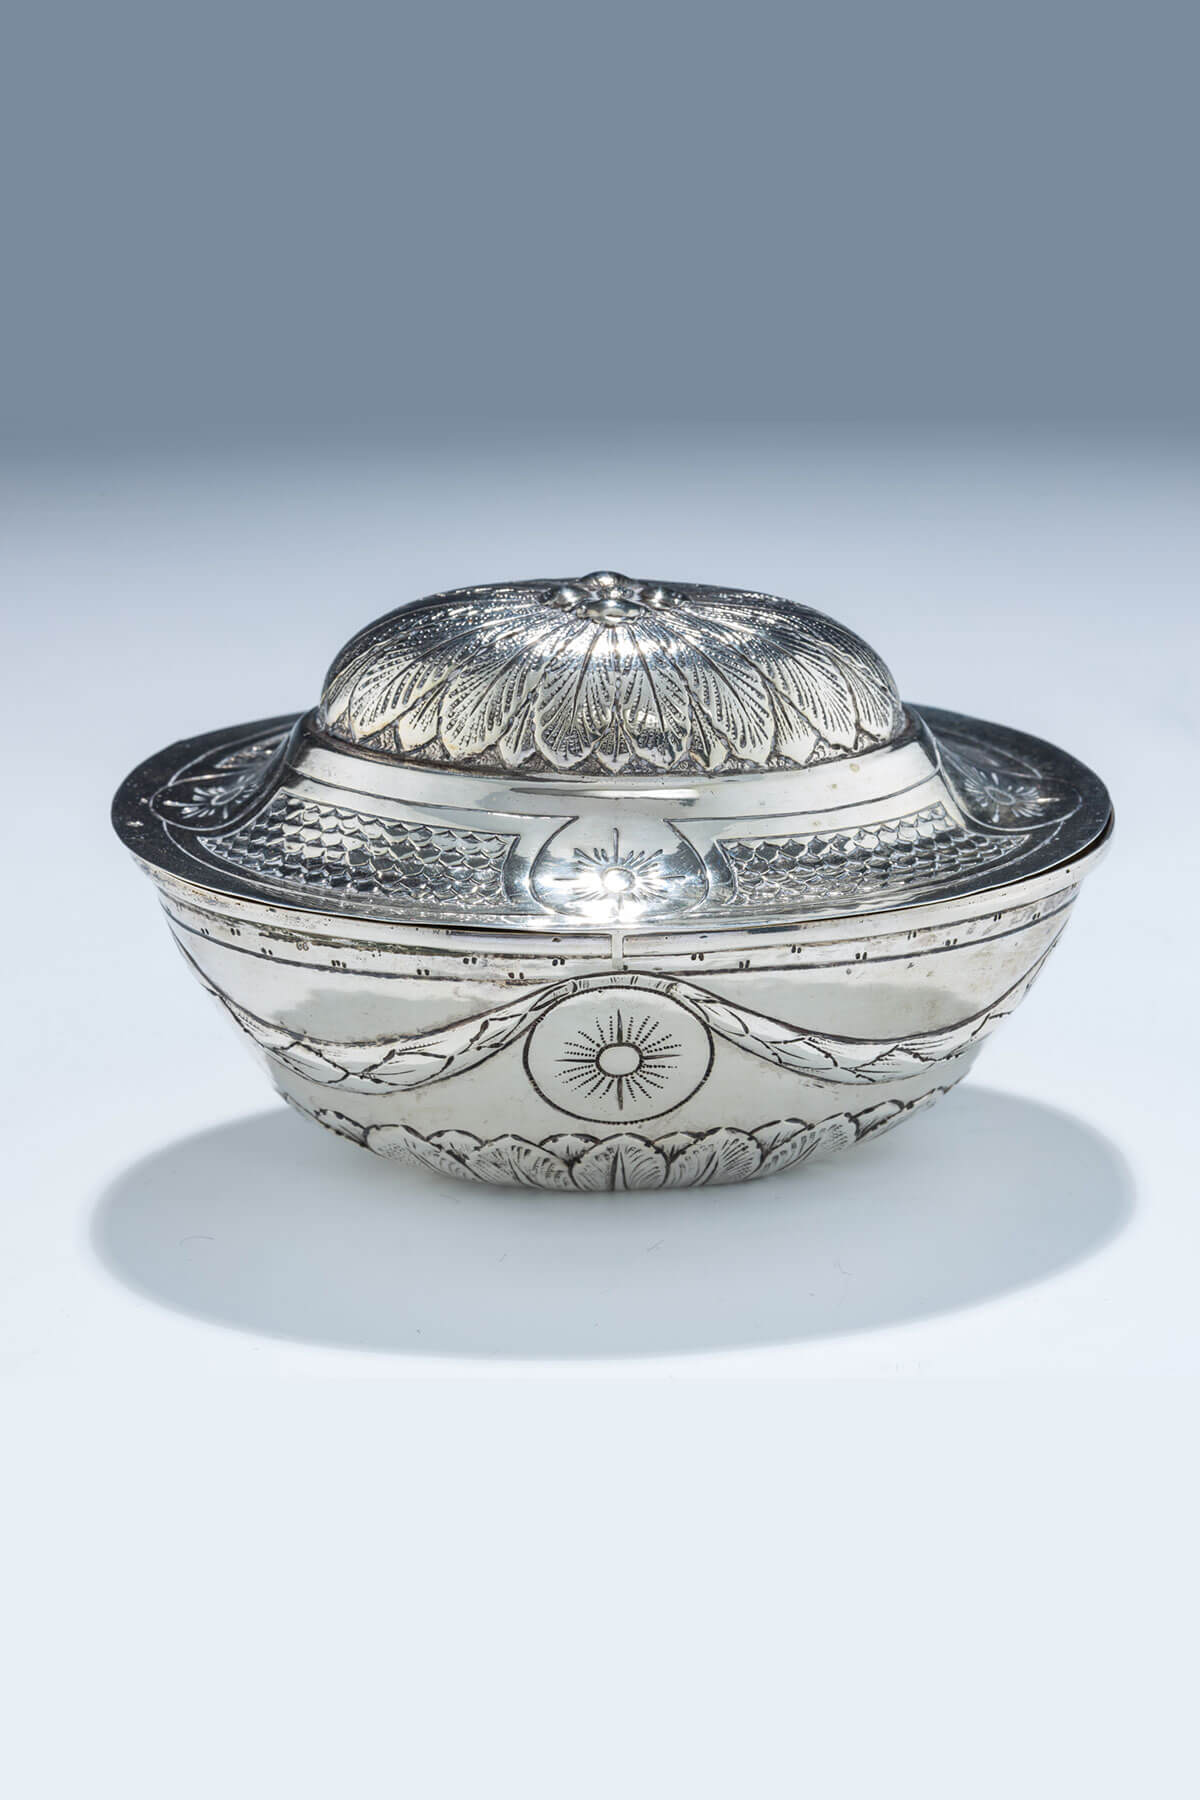 51. A Silver Etrog Container